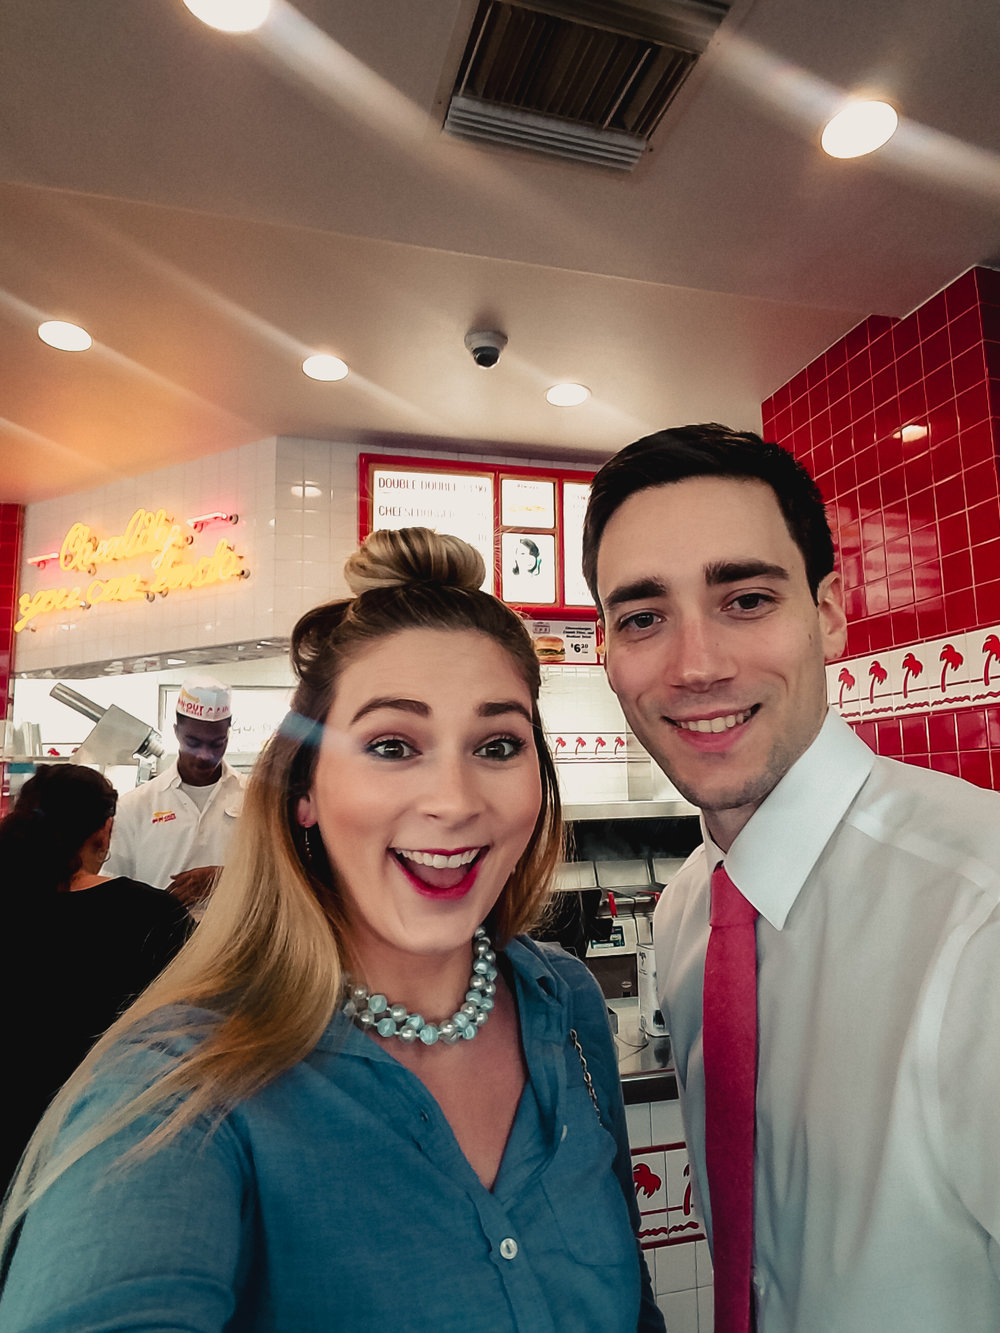 Phone photo - In-N-Out after our courthouse ceremony!